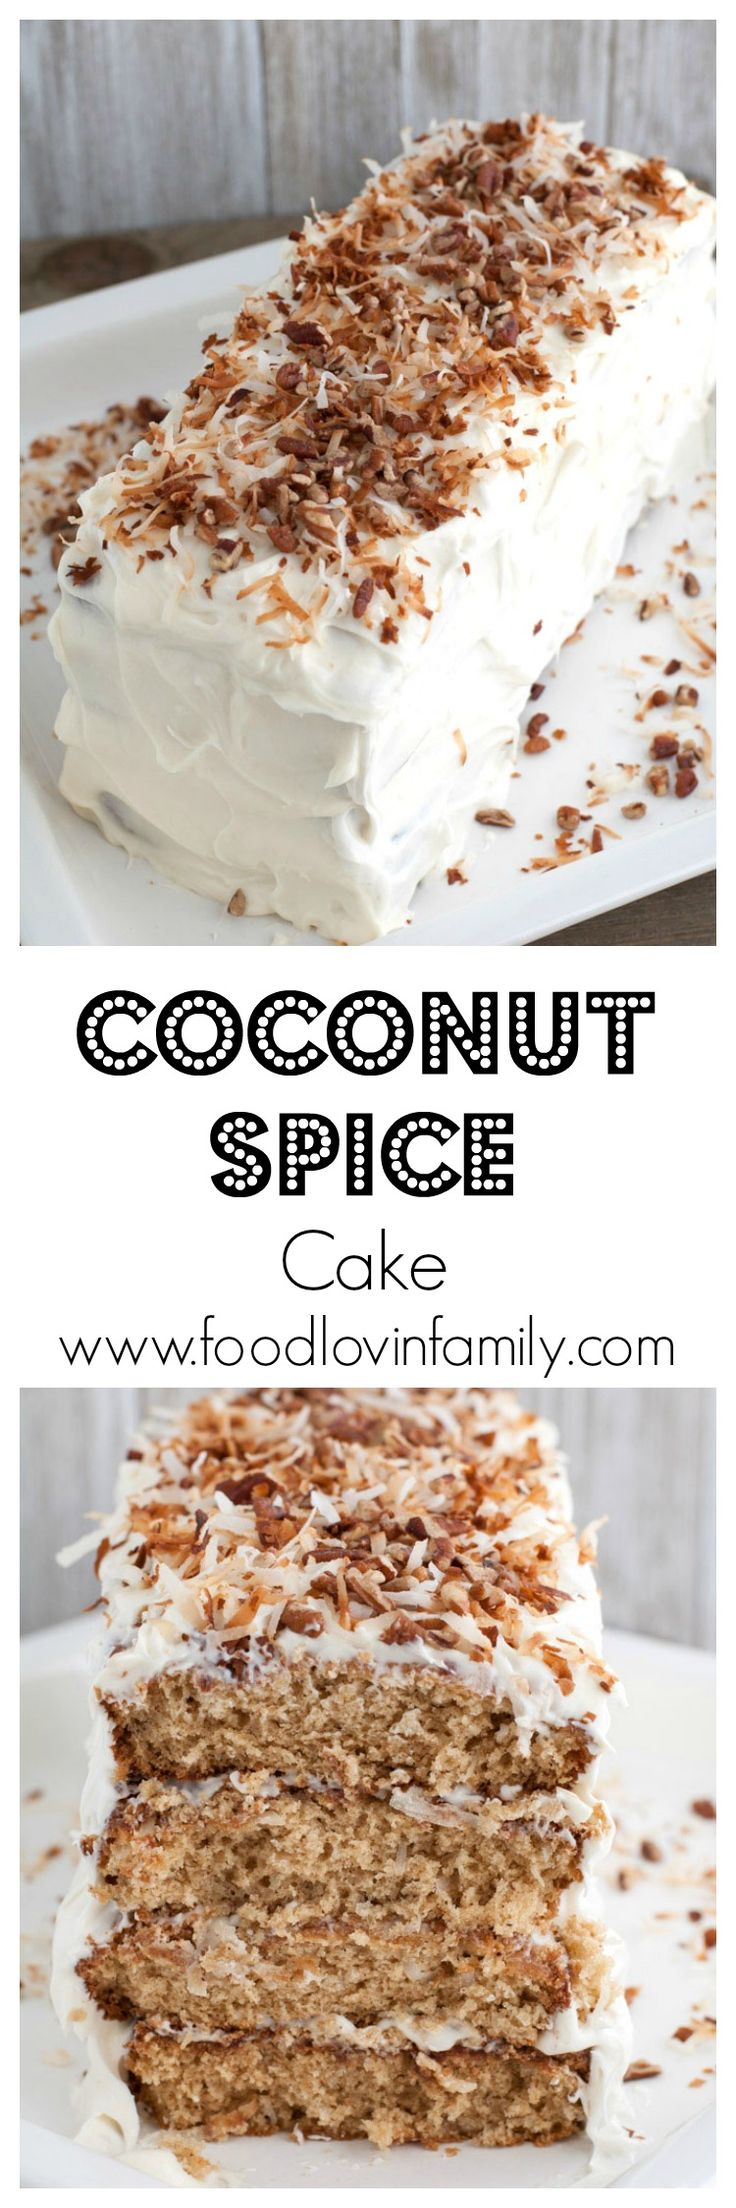 Layered coconut spice cake with cream cheese frosting is a cake sure to impress your guests. Filled with warm spices, coconut and chopped pecans, this cake has texture and amazing flavors. | http://www.foodlovinfamily.com/layered-coconut-spice-cake/